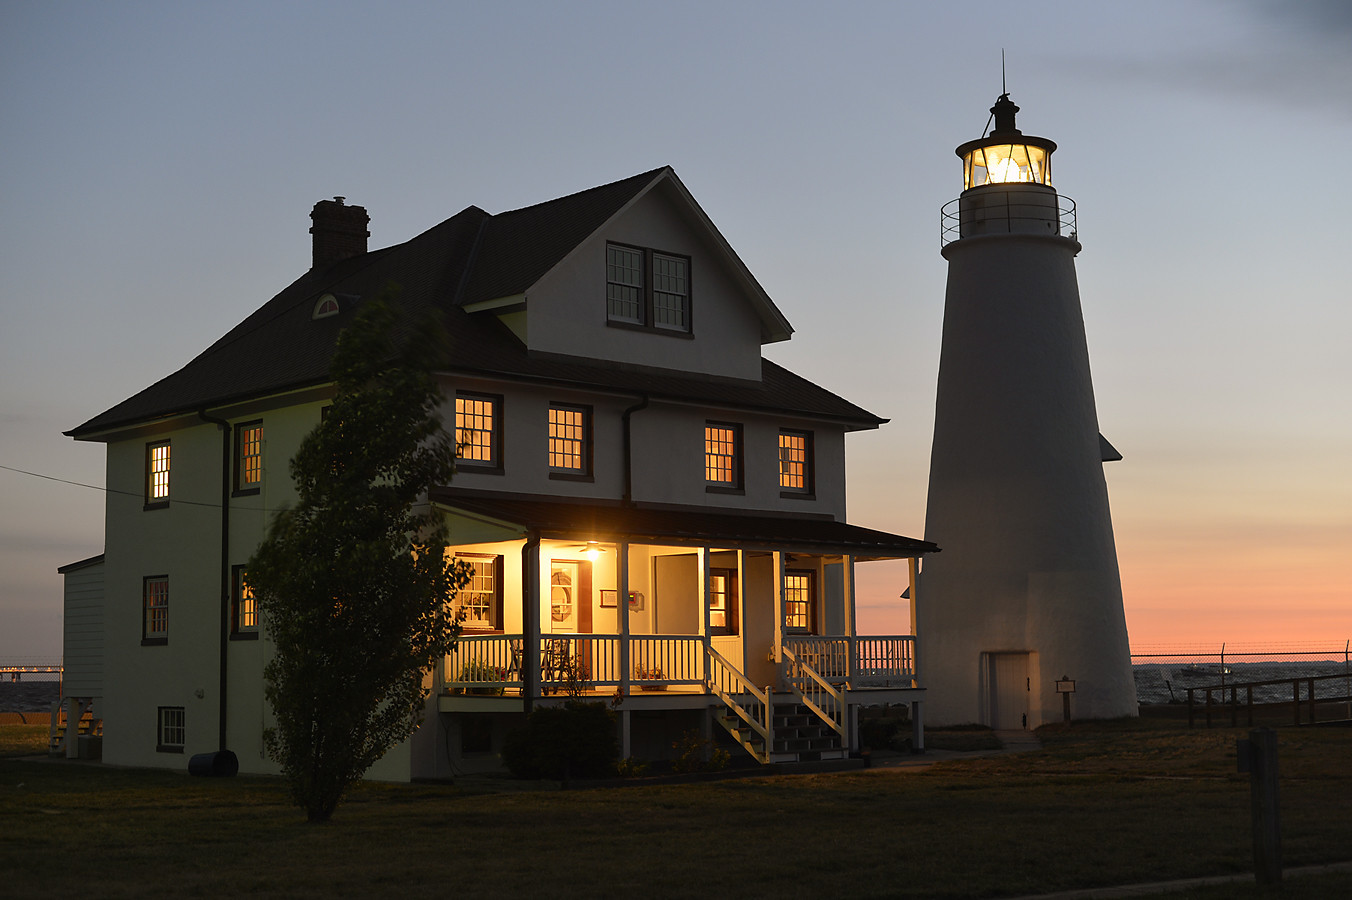 Unusual hotels near Baltimore [Pictures] - Cove Point Lighthouse